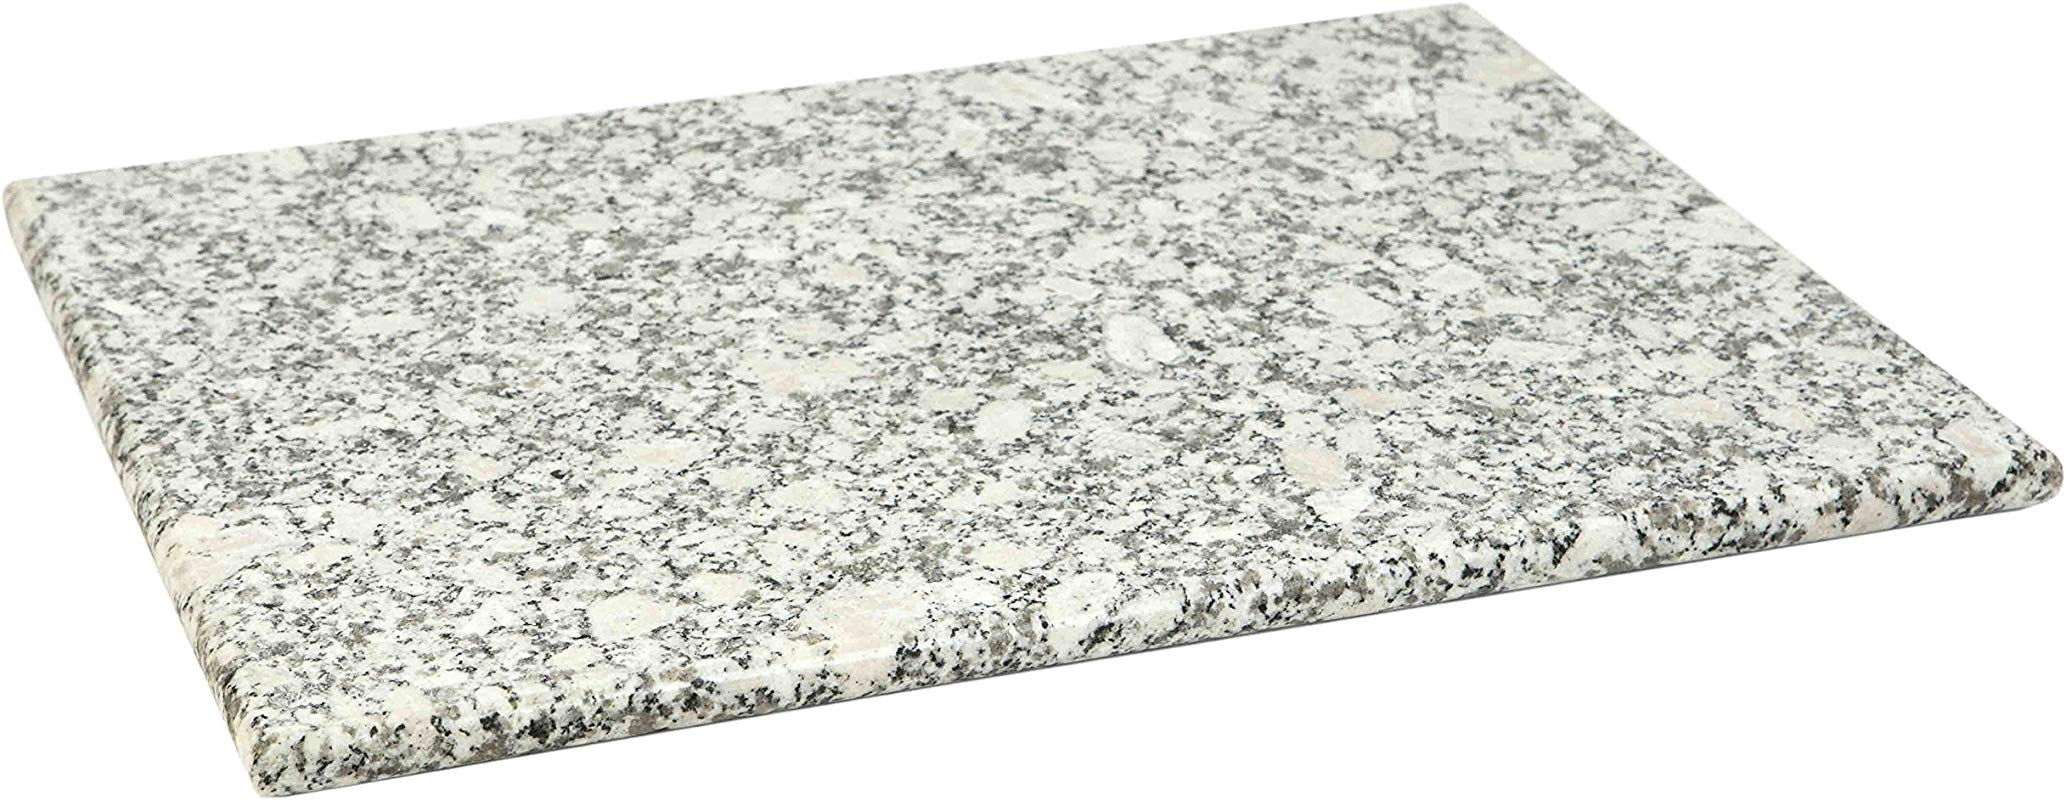 Home Basics Granite Cutting Board 12 X 16 White